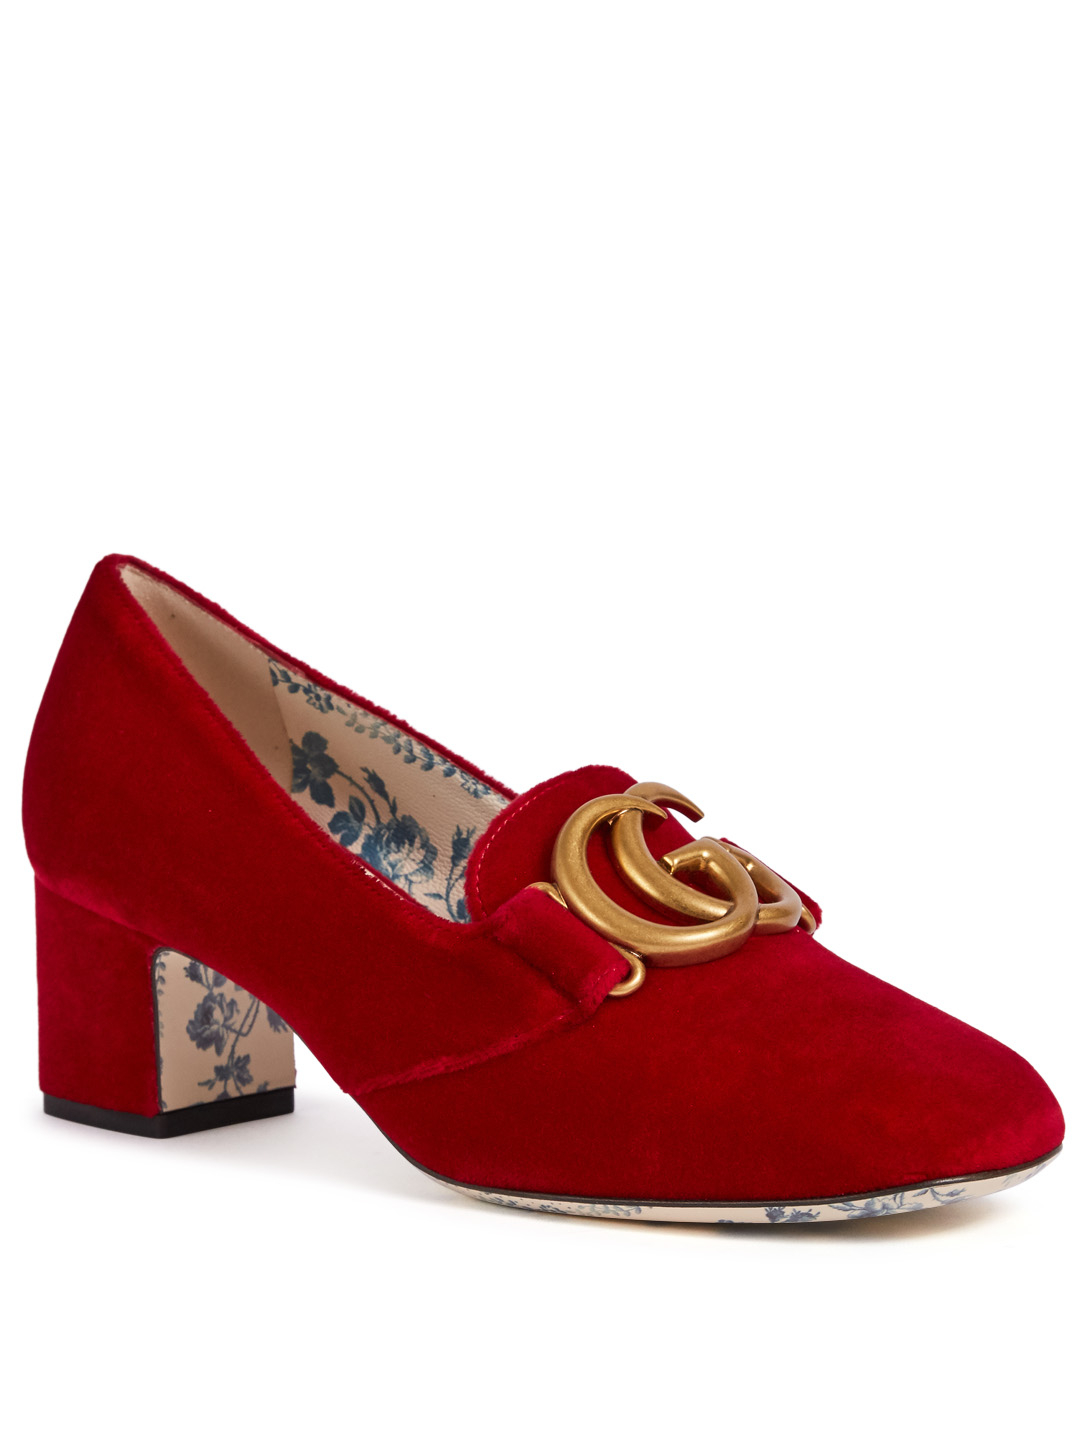 GUCCI Victoire Velvet Pumps Designers Red